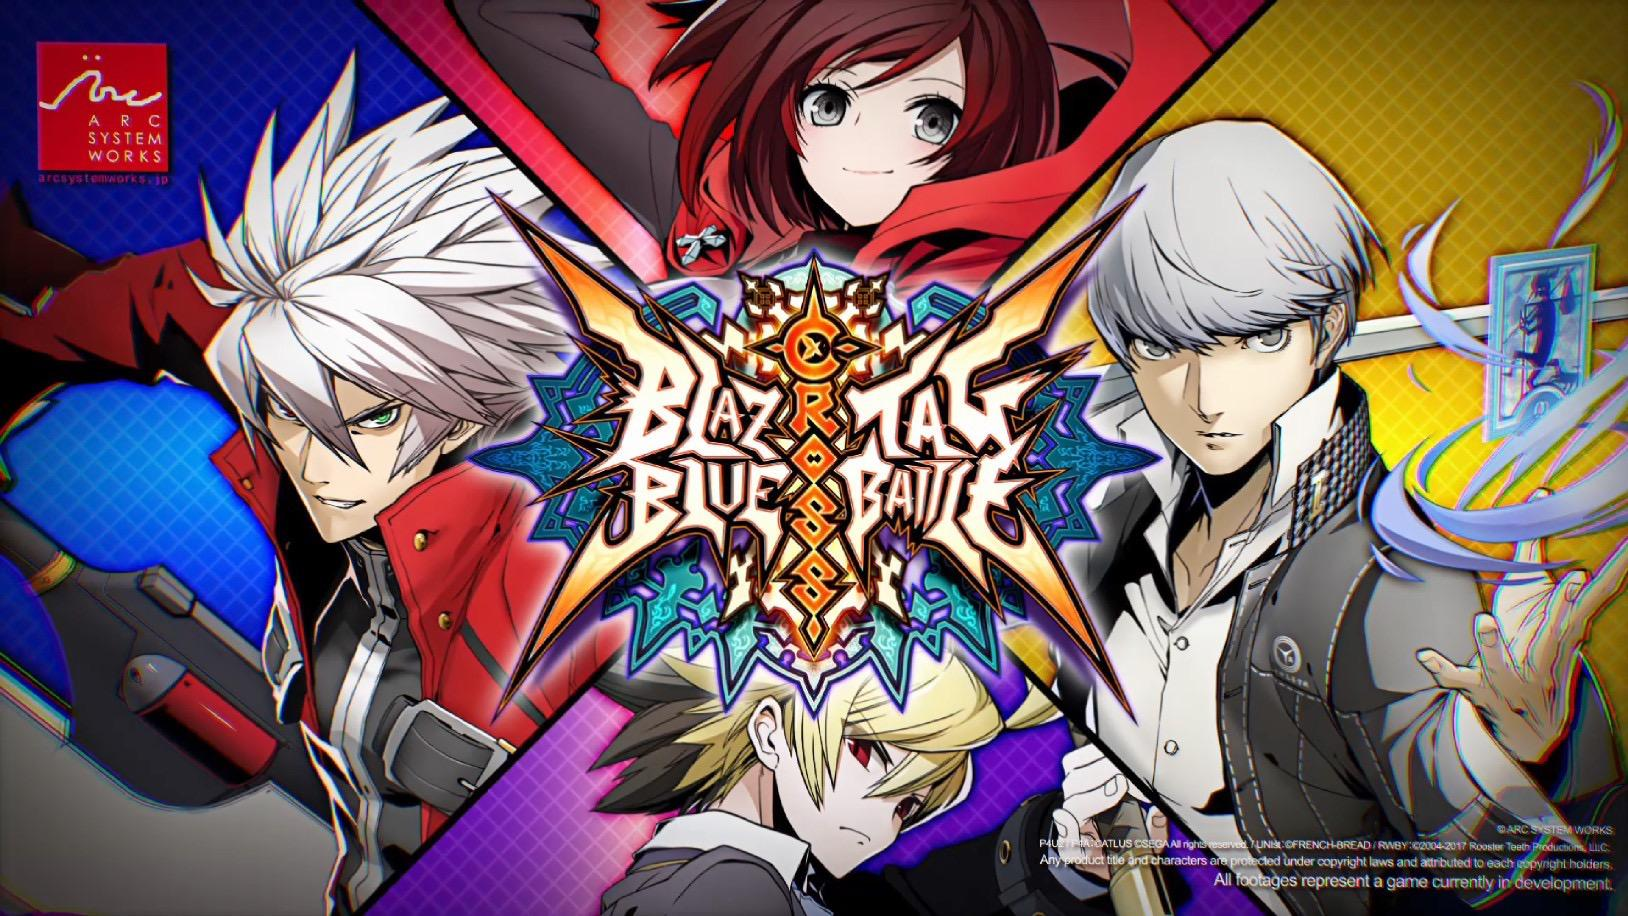 Cross Tag Battle Includes Characters from Persona, RWBY, and More — BlazBlue